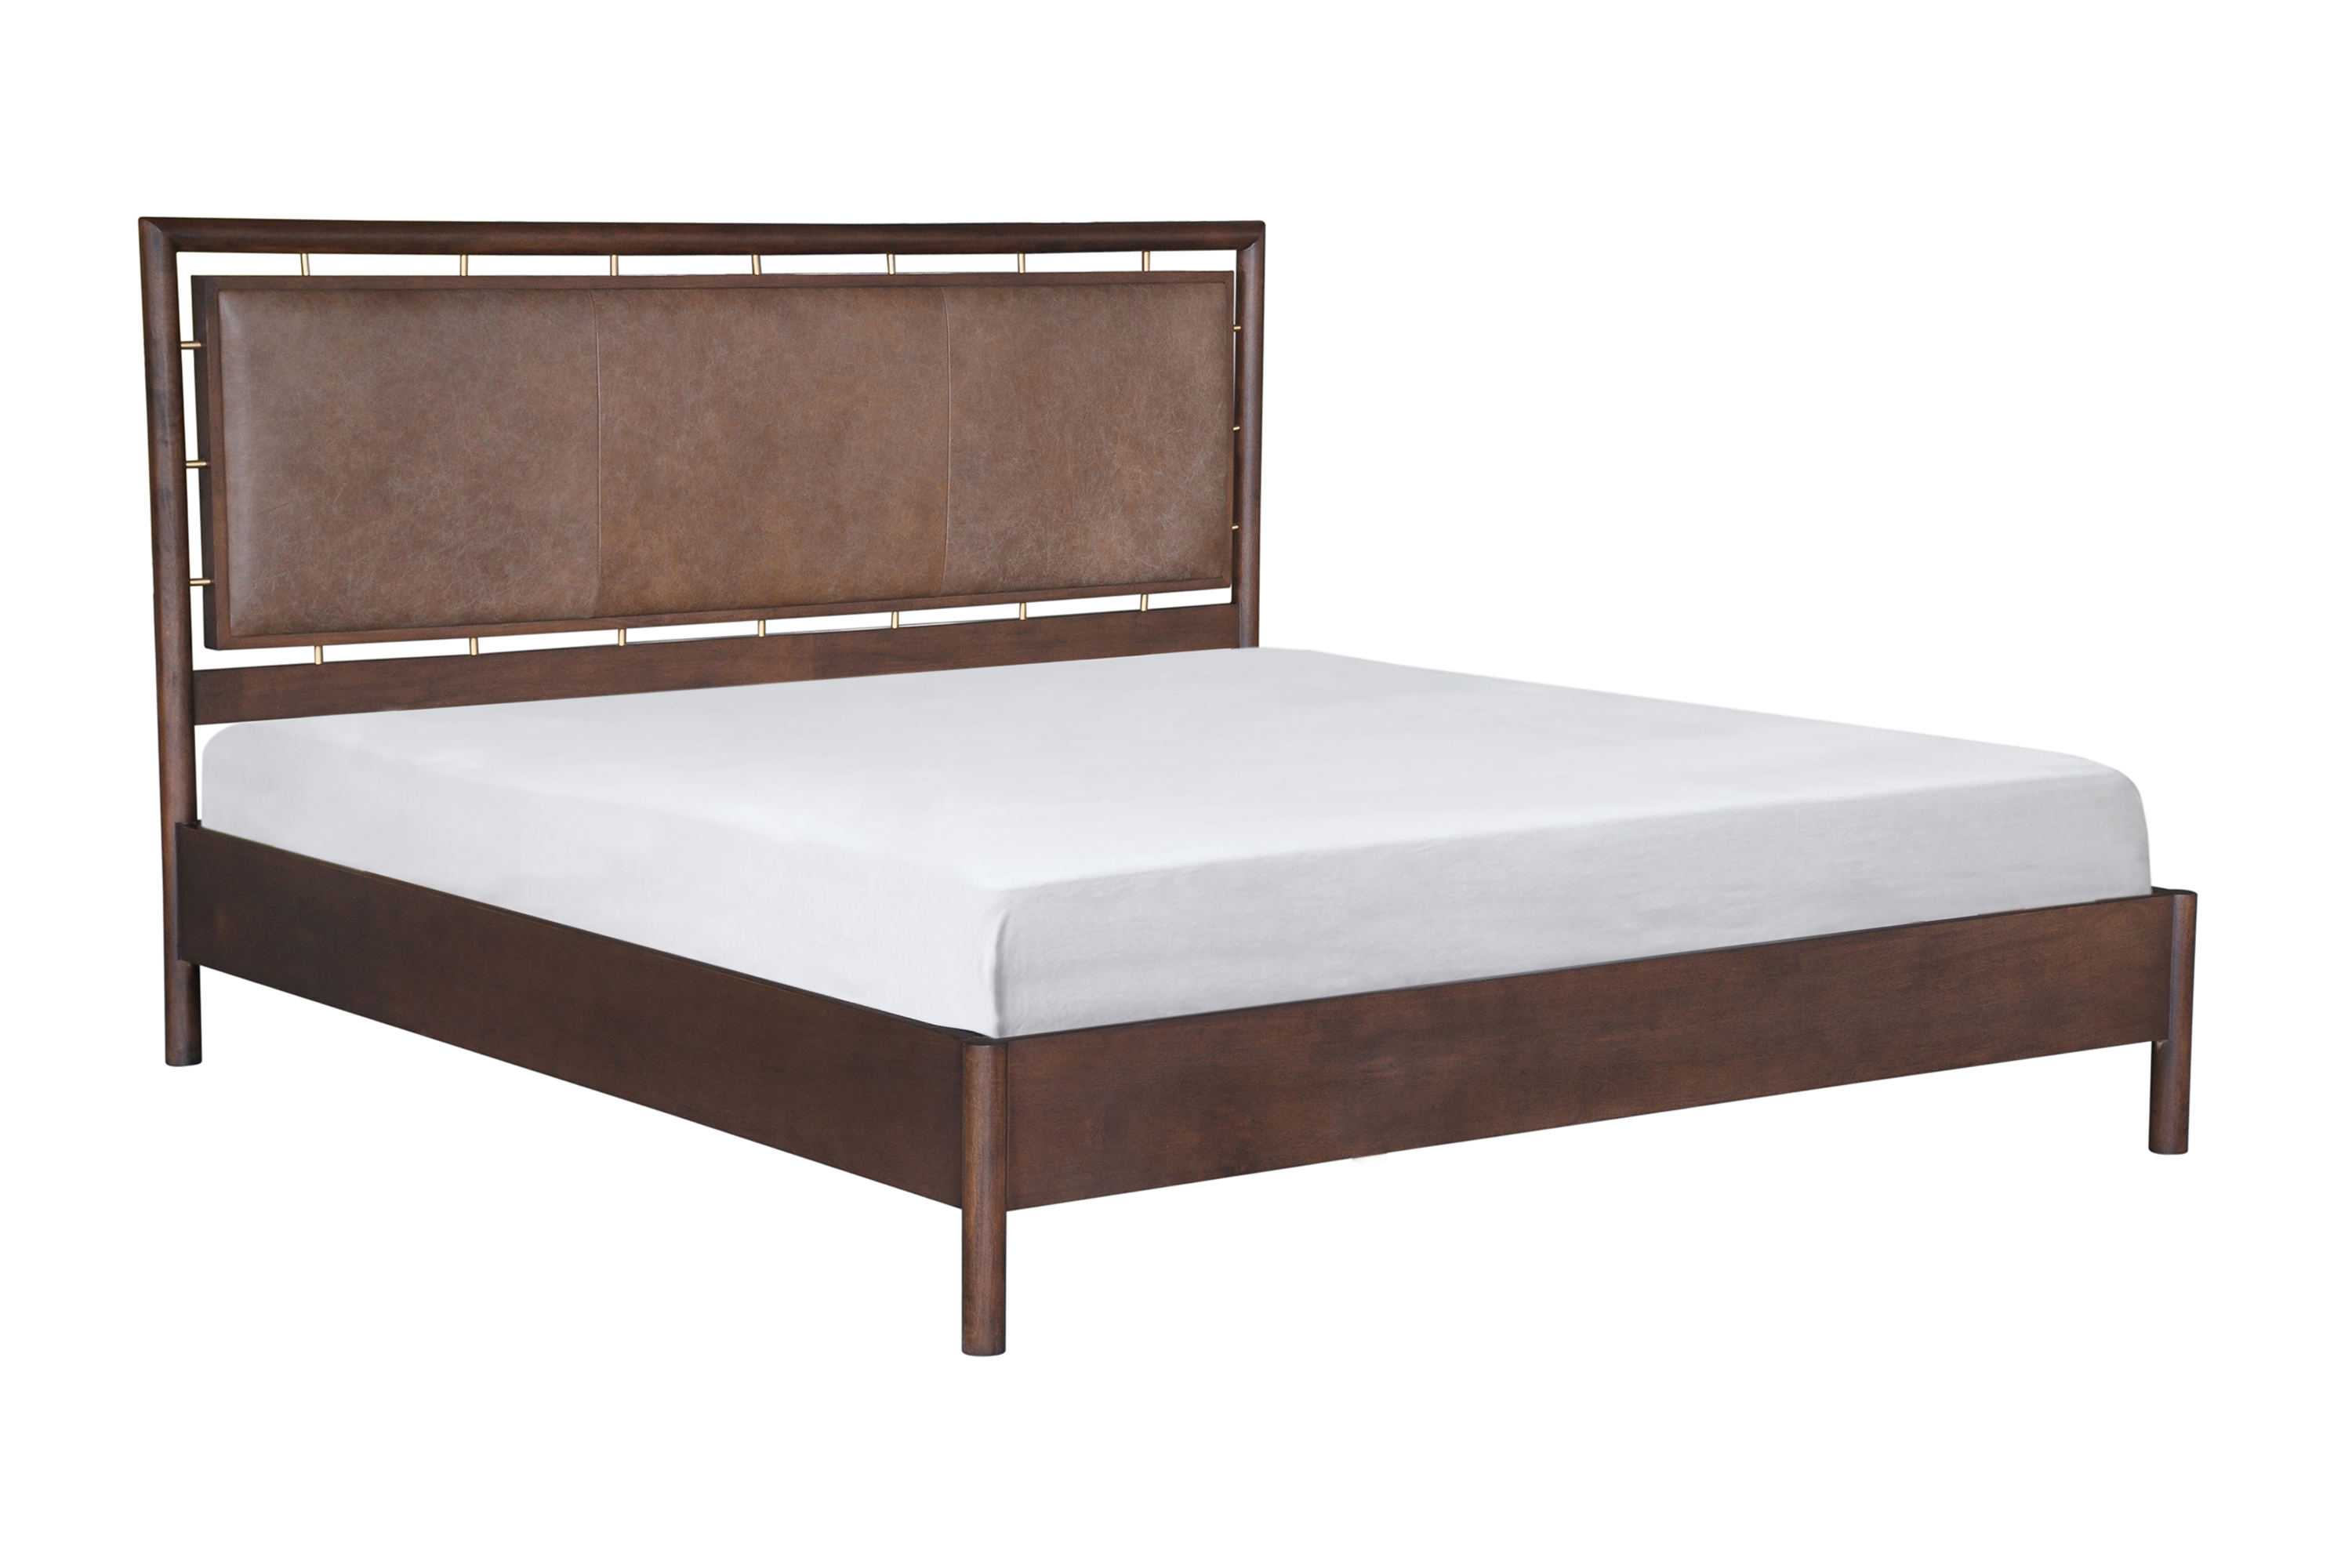 Westwood Bed King, Walnut/Napoli Tan